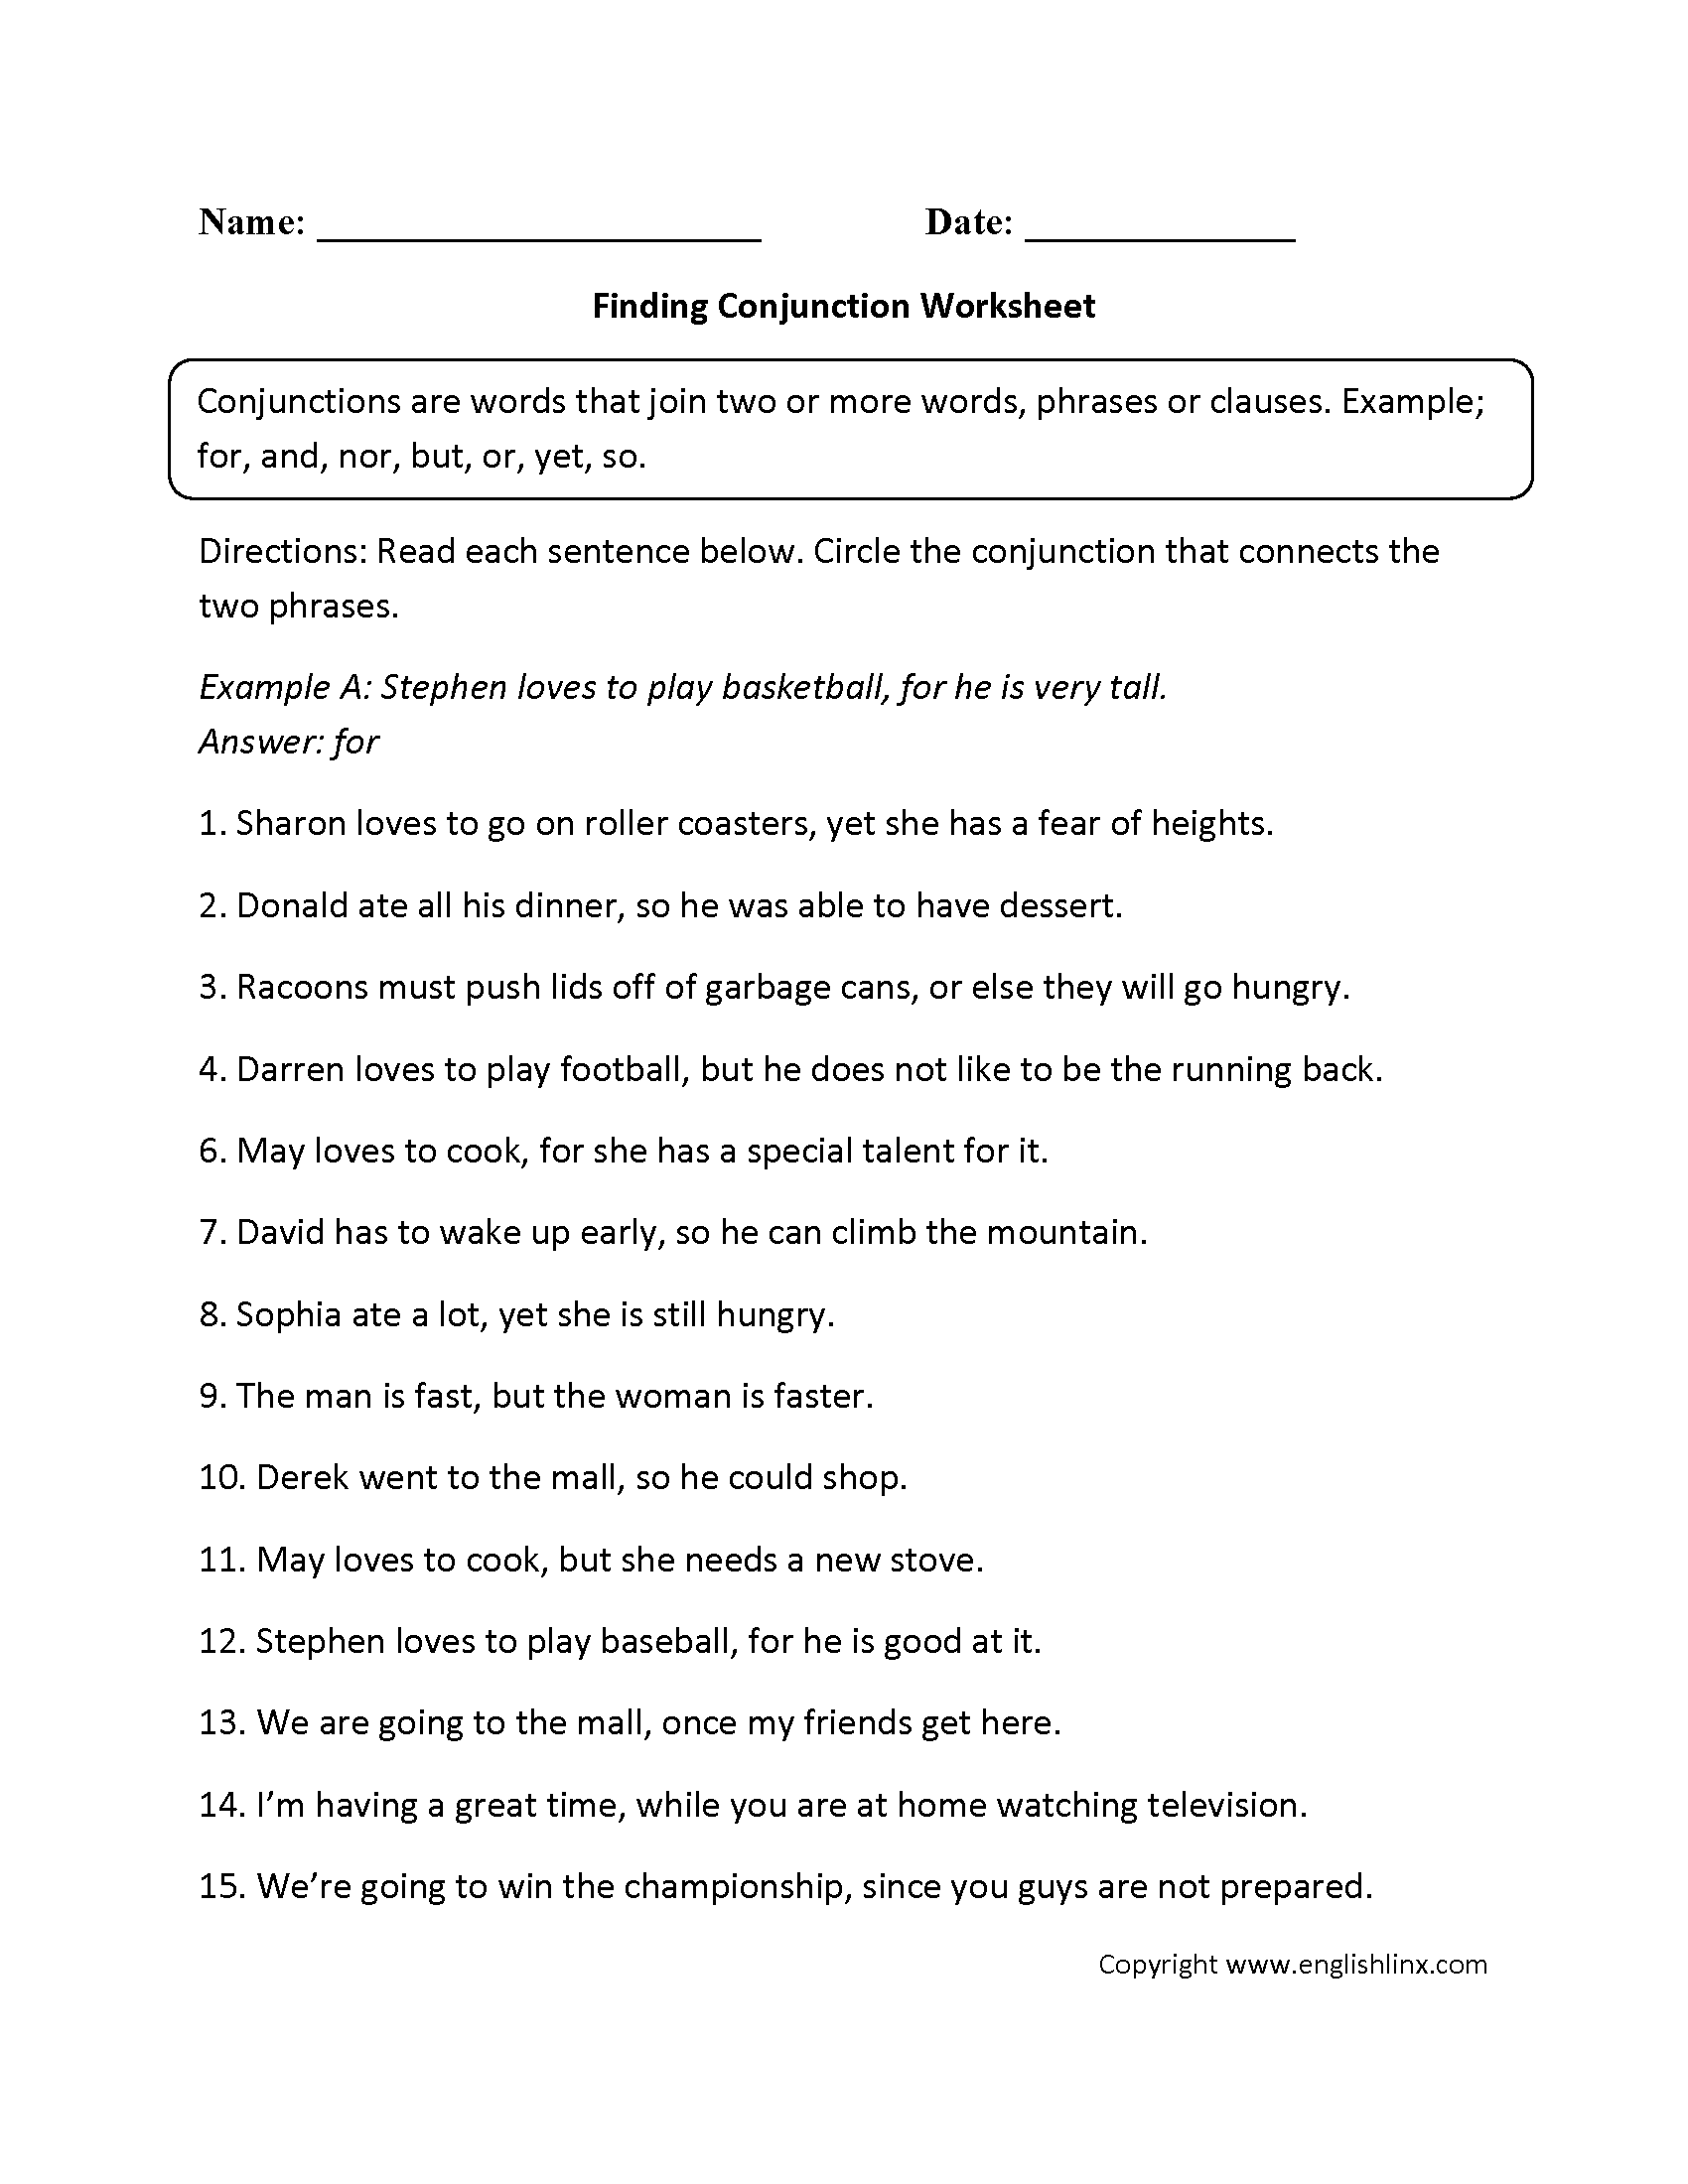 Worksheets Parts Of Speech Practice Worksheets parts of speech worksheets free library download and sheet parents scholastic com